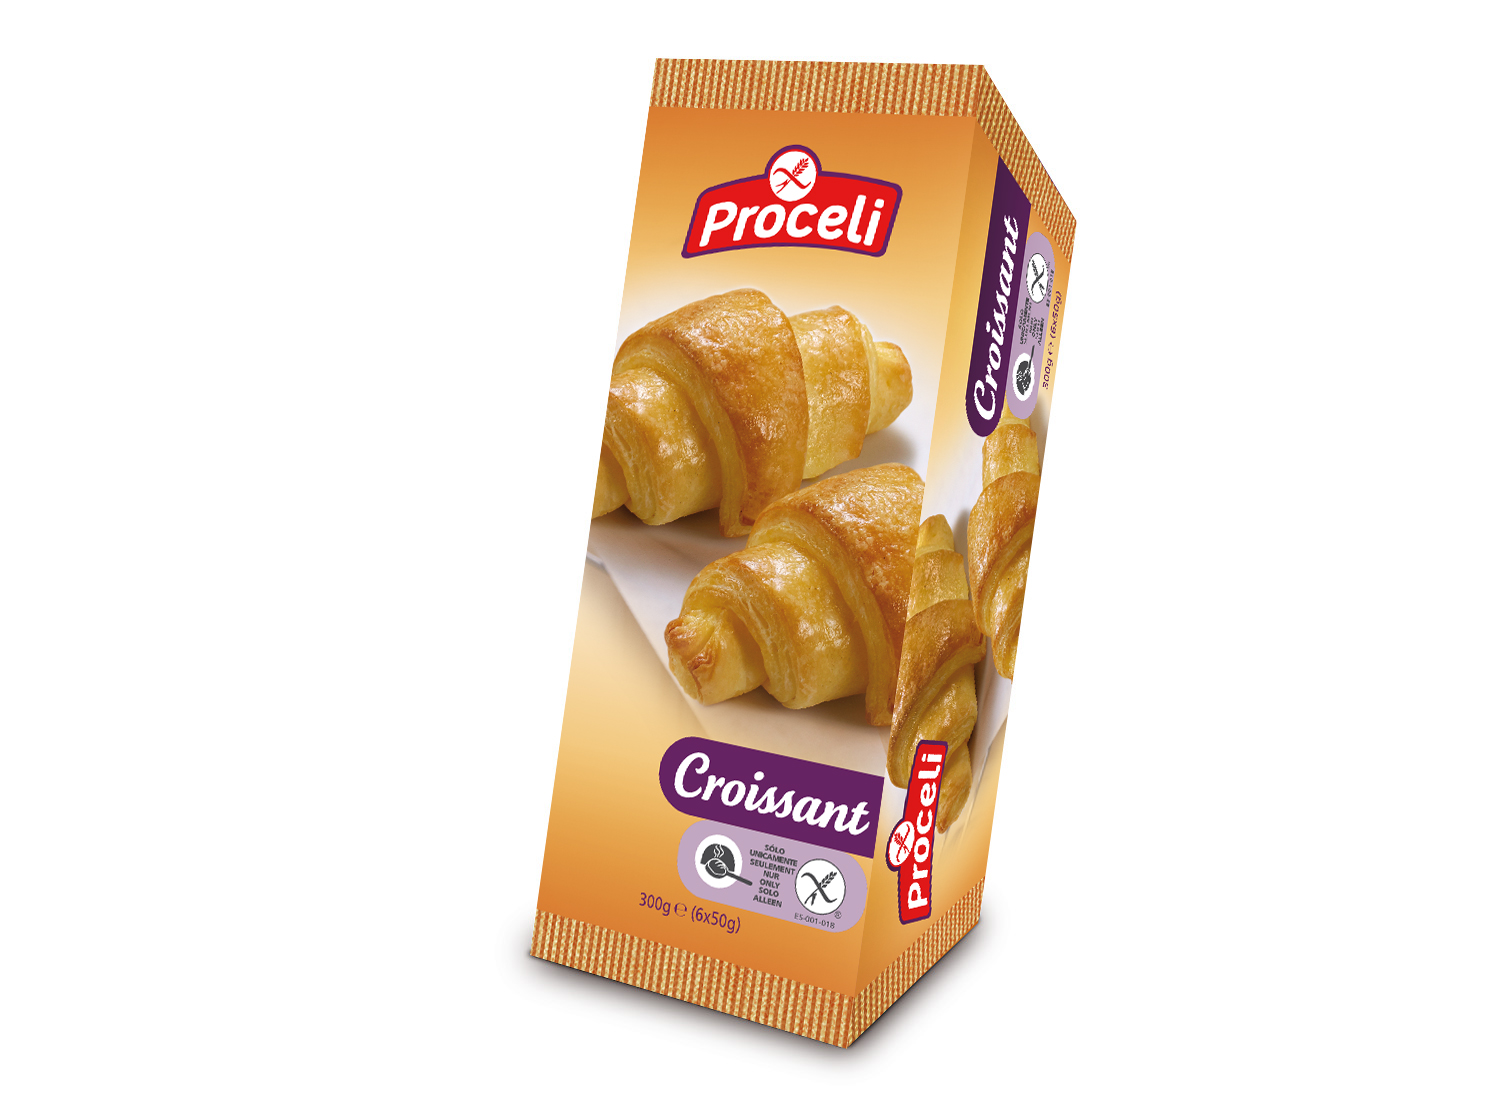 Pack of gluten-free Croissant 300g from Proceli